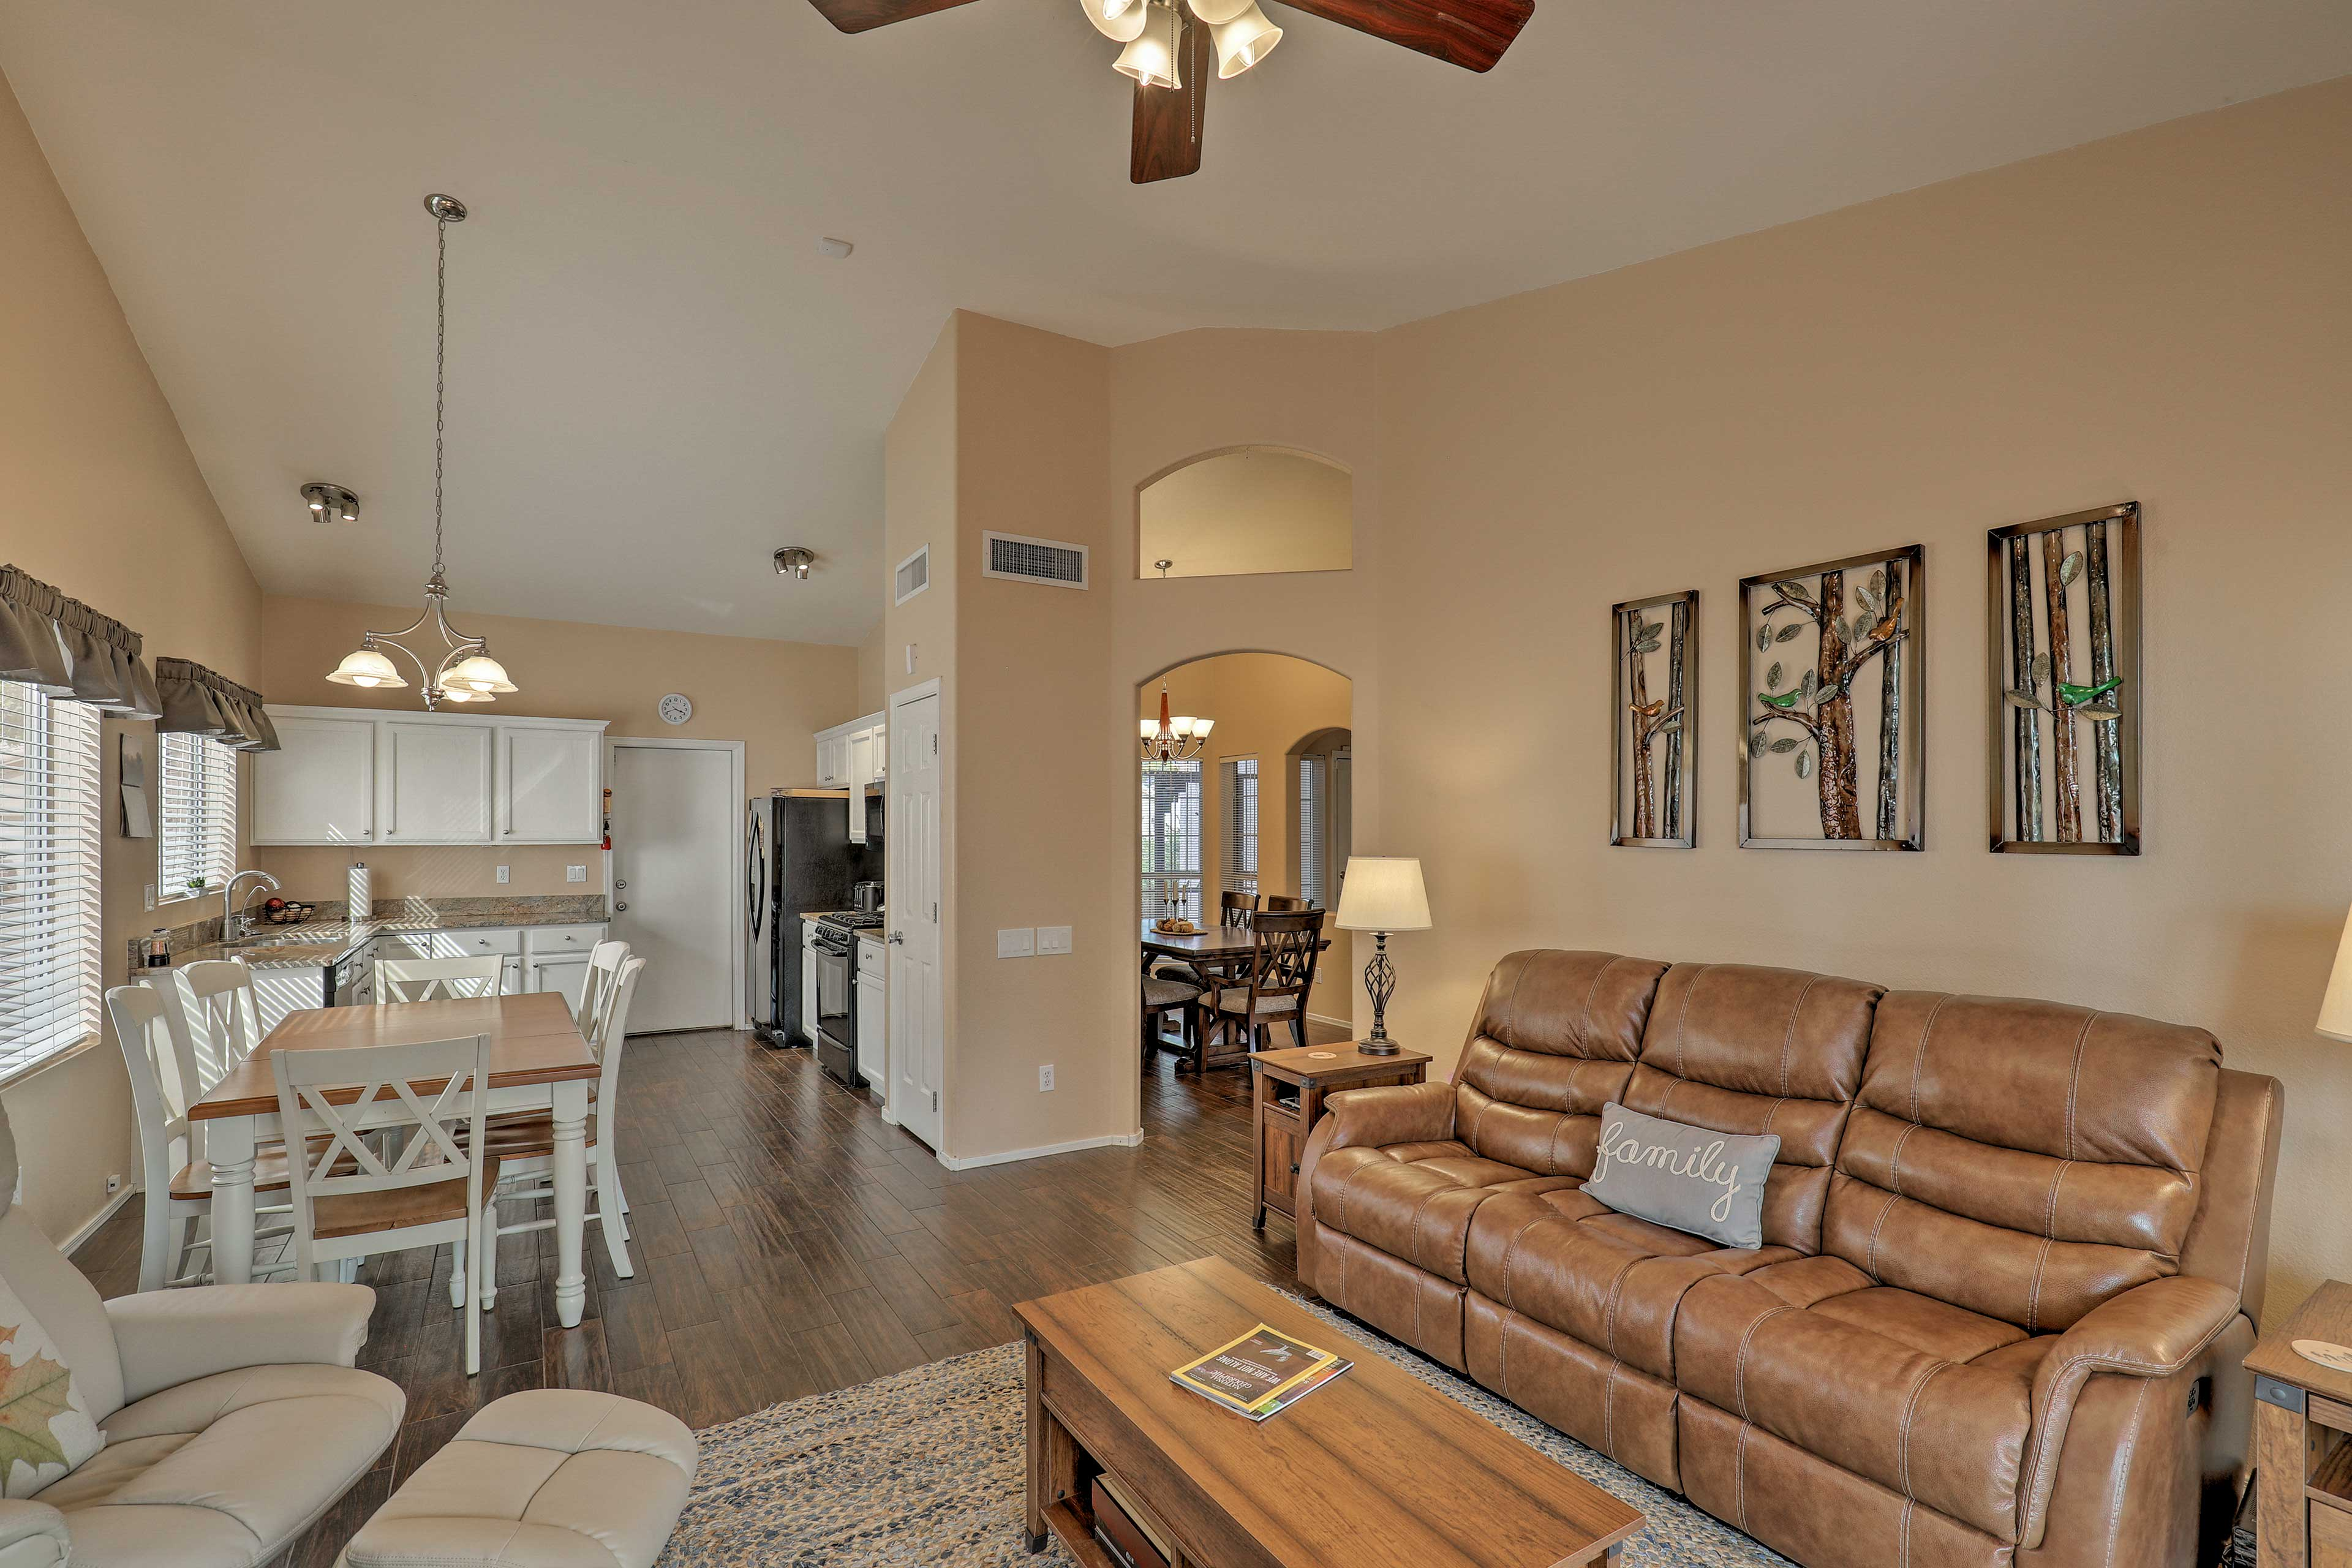 Make yourself at home in this inviting interior with comfortable furnishings.